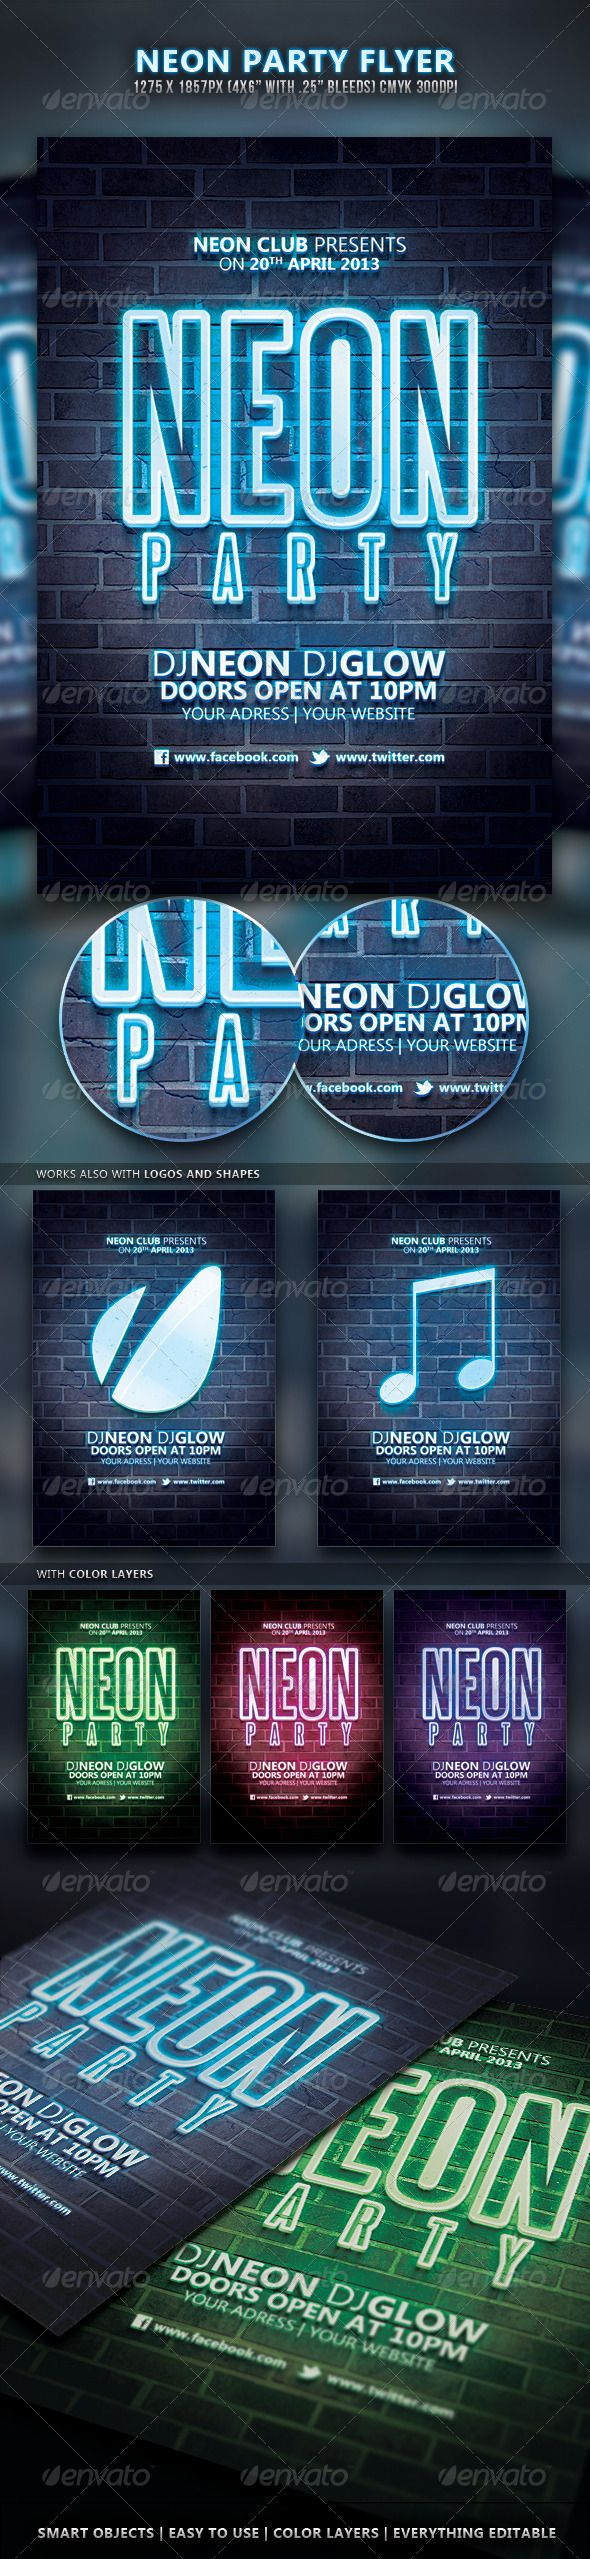 Neon Party Flyer  — PSD Template #glow sticks #flyer • Download ➝ https://graphicriver.net/item/neon-party-flyer/4355545?ref=pxcr